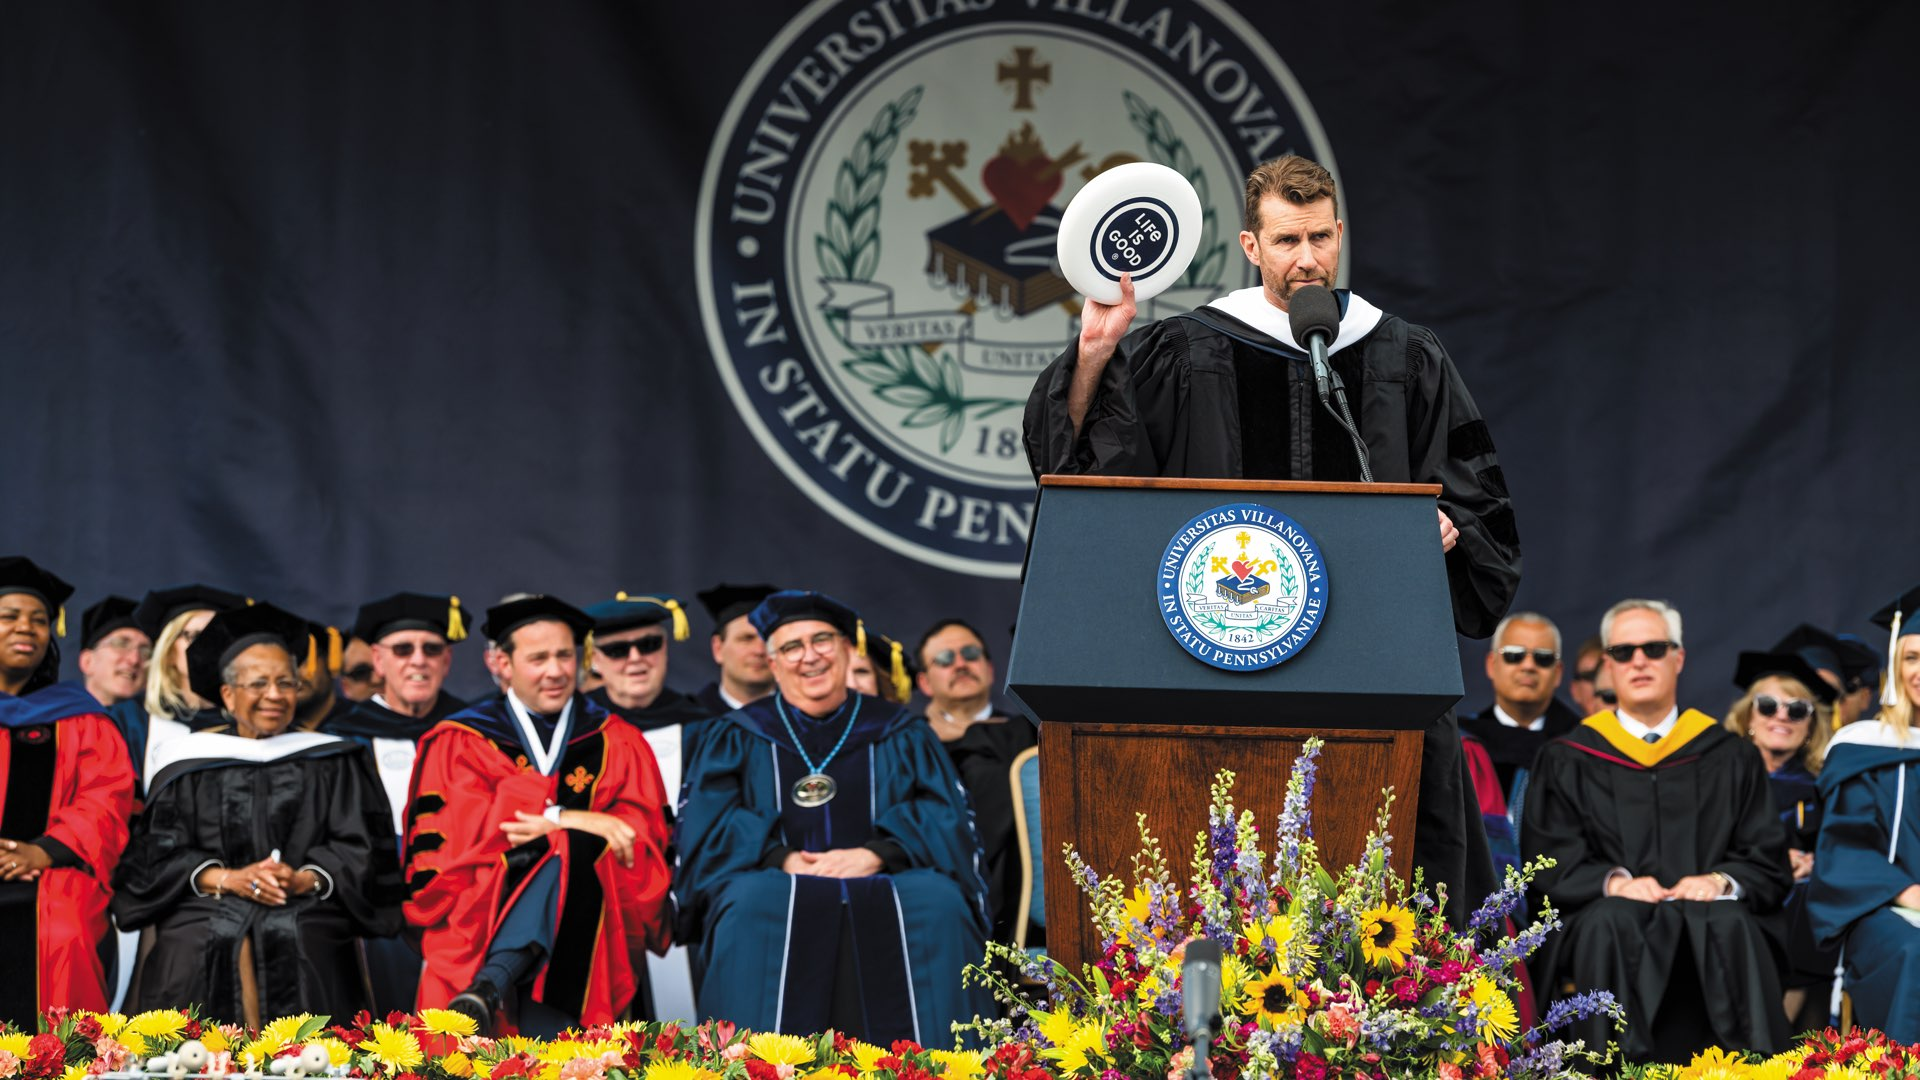 On stage, Commencement speaker Bert Jacobs at the podium in graduation regalia holding up a Life Is Good frisbee